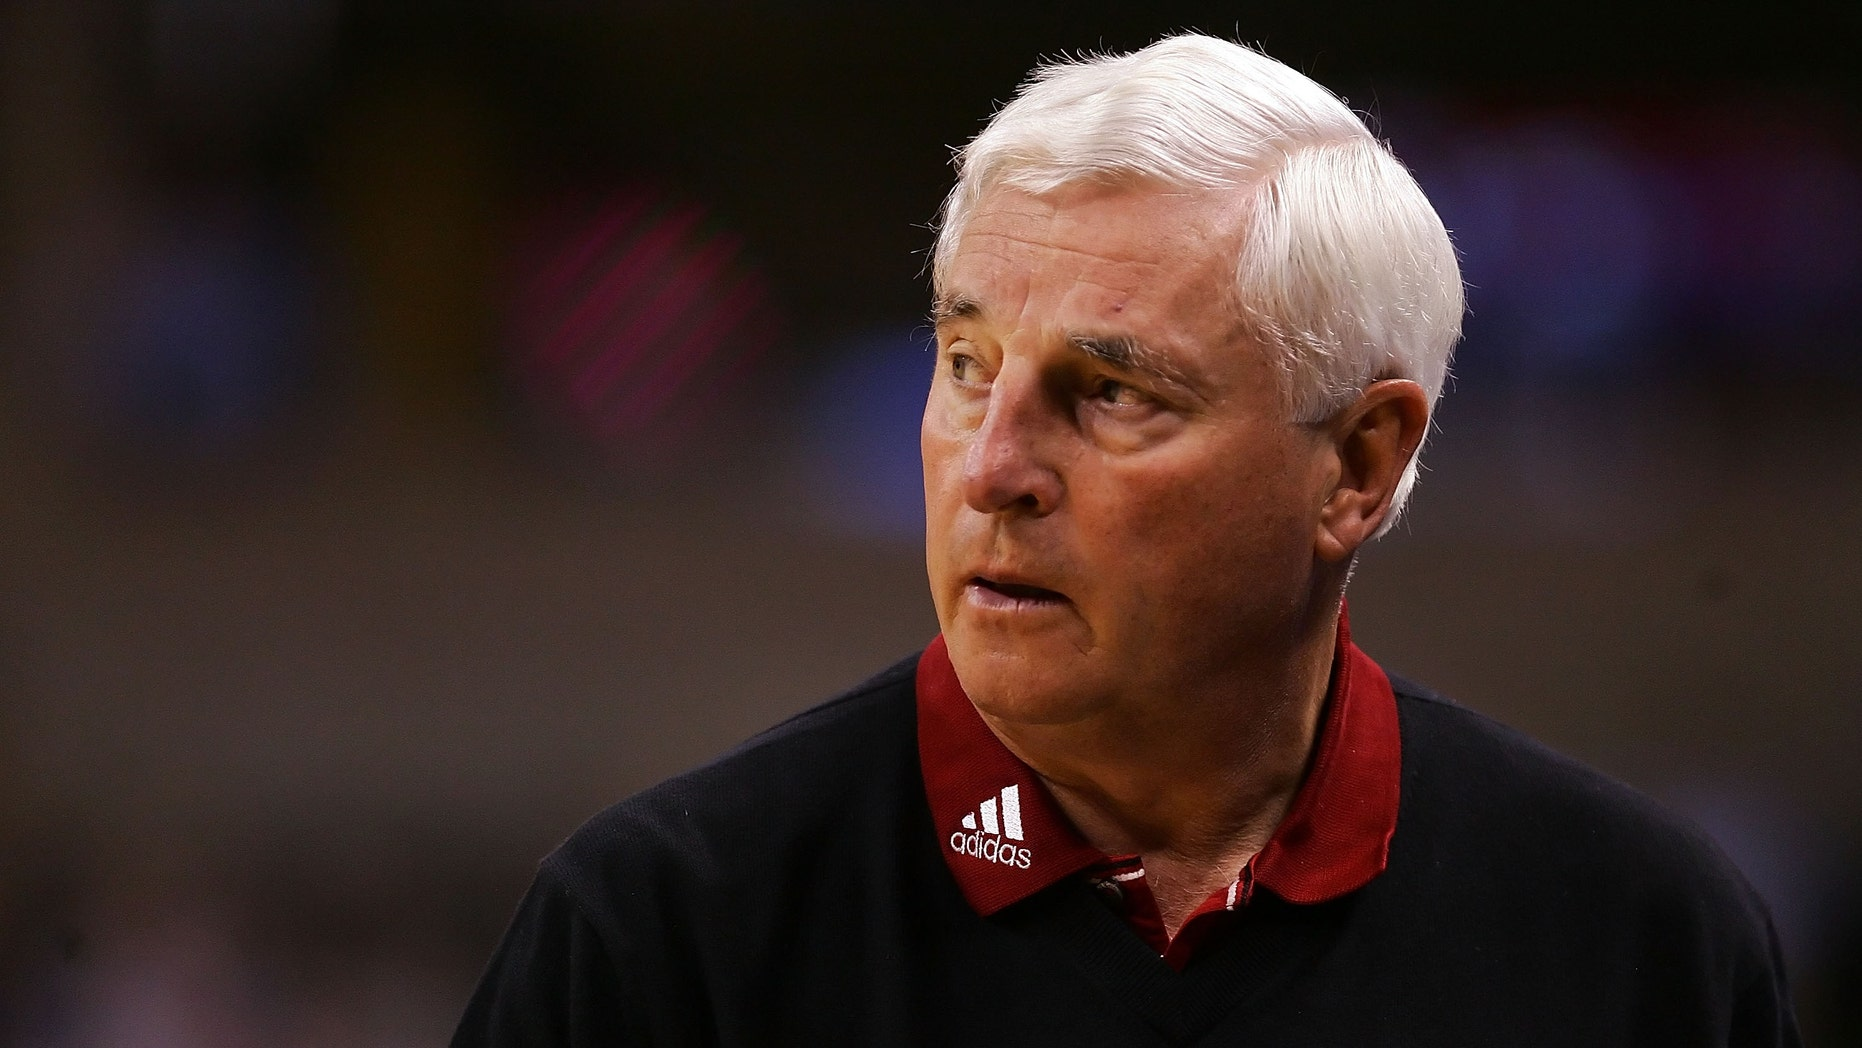 WINSTON-SALEM, NC - MARCH 15:  Head coach Bob Knight of the Texas Tech Red Raiders reacts from the sideline against the Boston College Eagles during the First Round of the 2007 NCAA Men's Basketball Tournament at Lawrence Joel Veterans Memorial Coliseum on March 15, 2007 in Winston-Salem, North Carolina.  (Photo by Streeter Lecka/Getty Images)